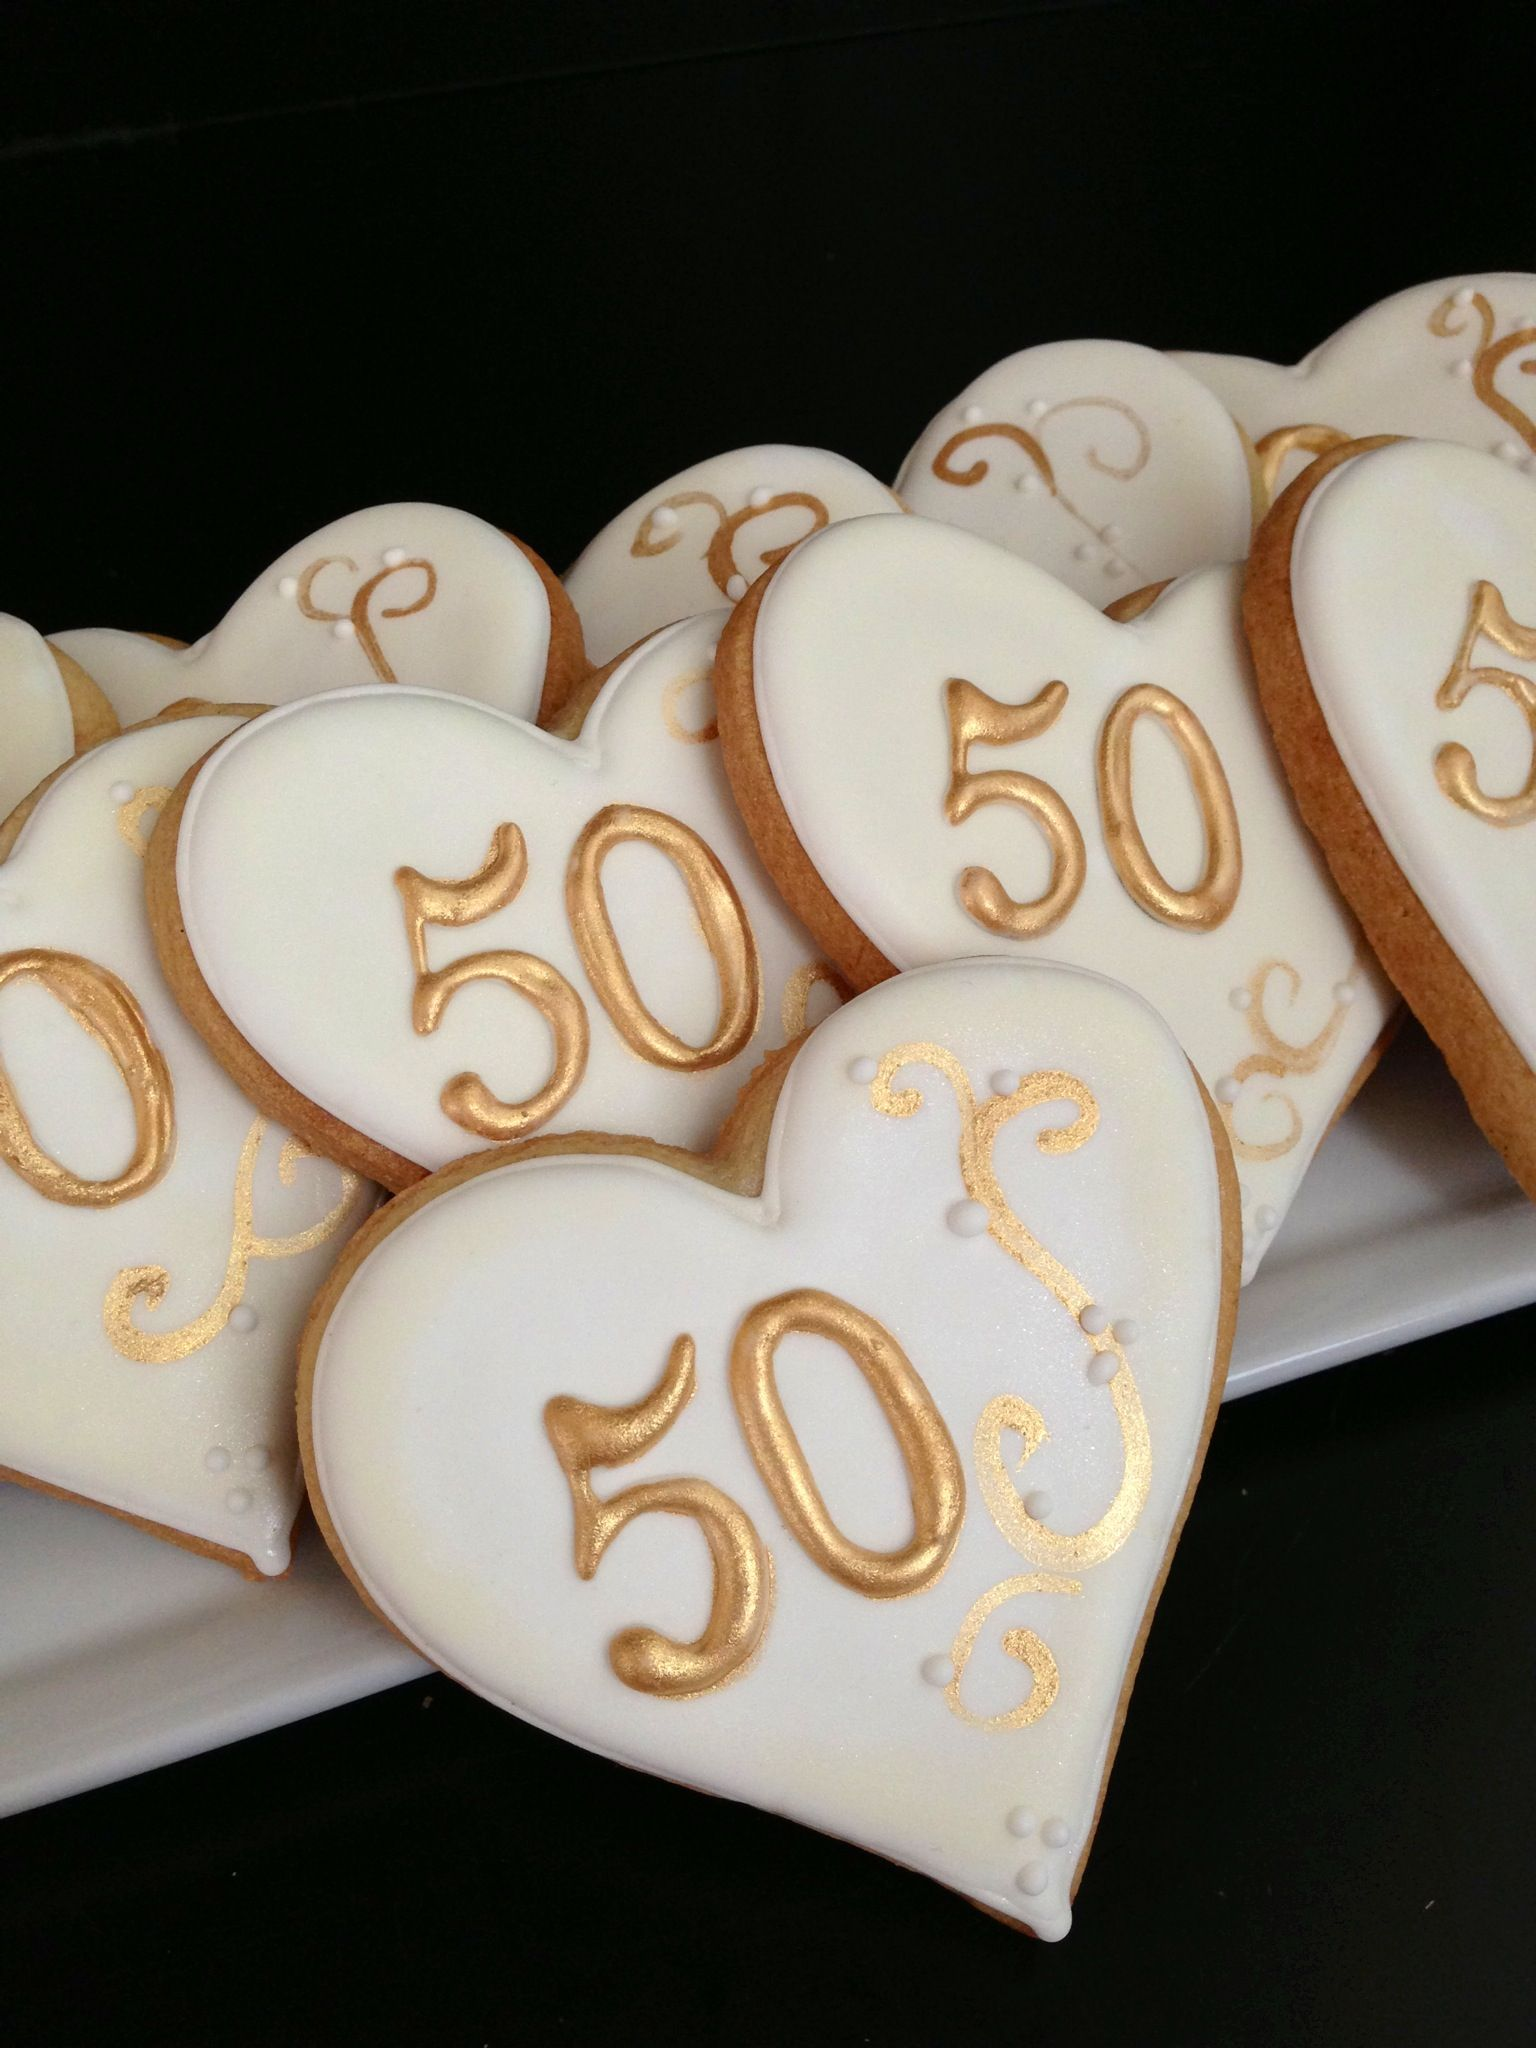 50th Anniversary Cookies 50th Anniversary Cookies